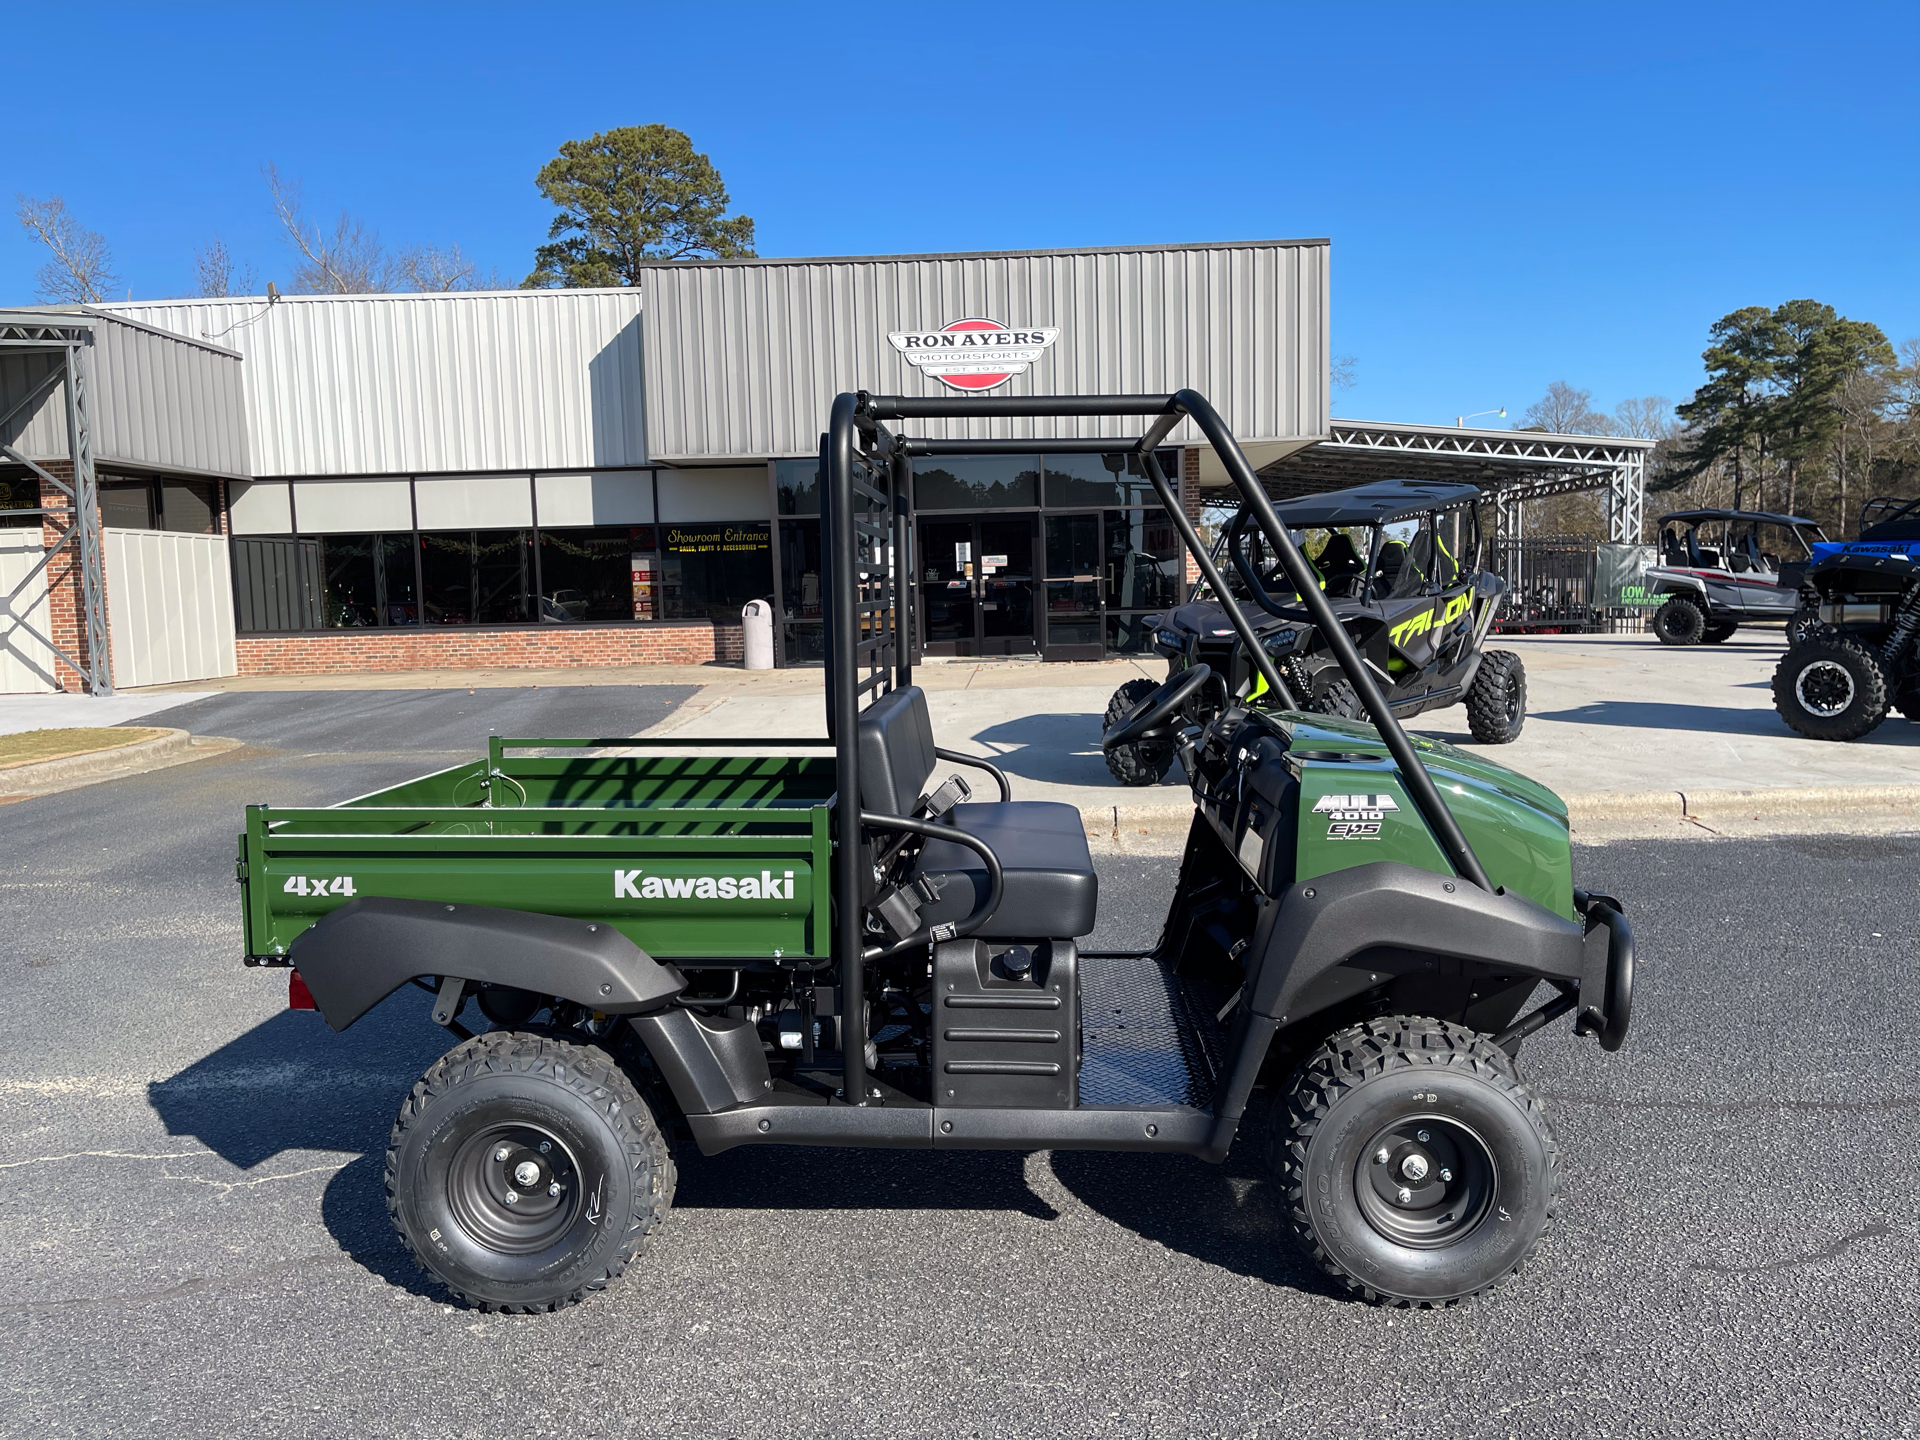 2021 Kawasaki Mule 4010 4x4 in Greenville, North Carolina - Photo 1